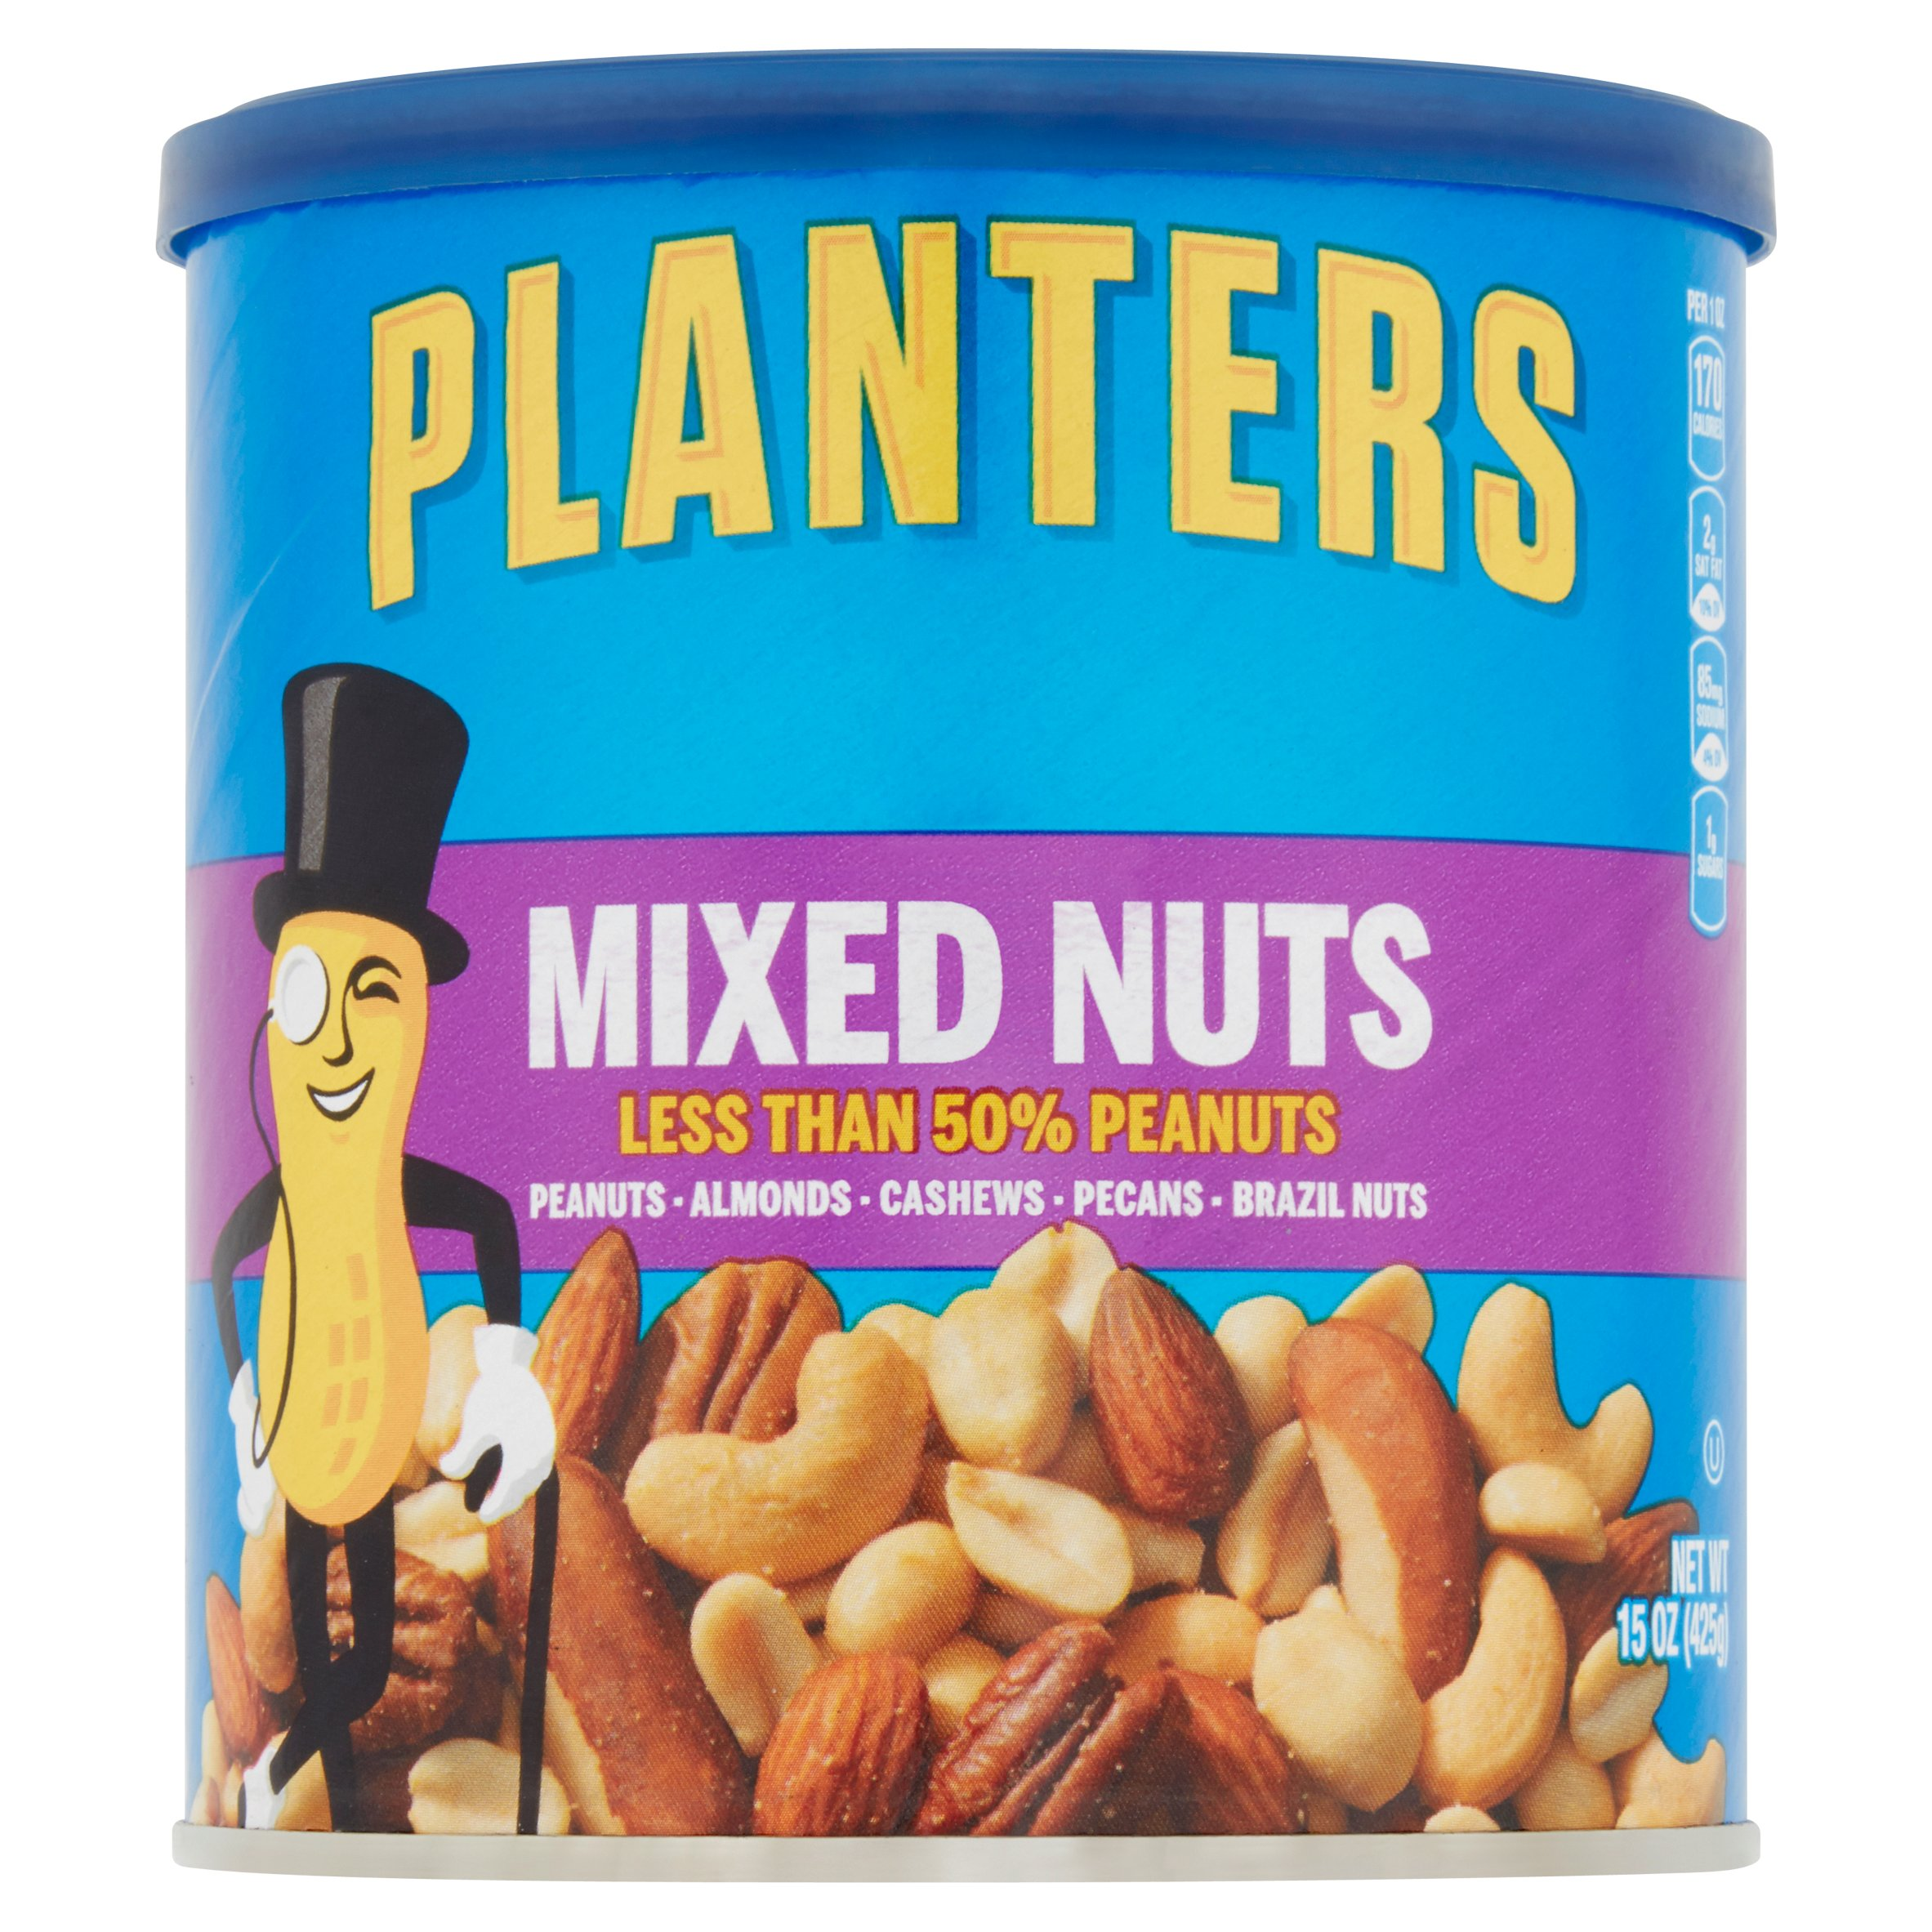 Planters Mixed Nuts 15oz